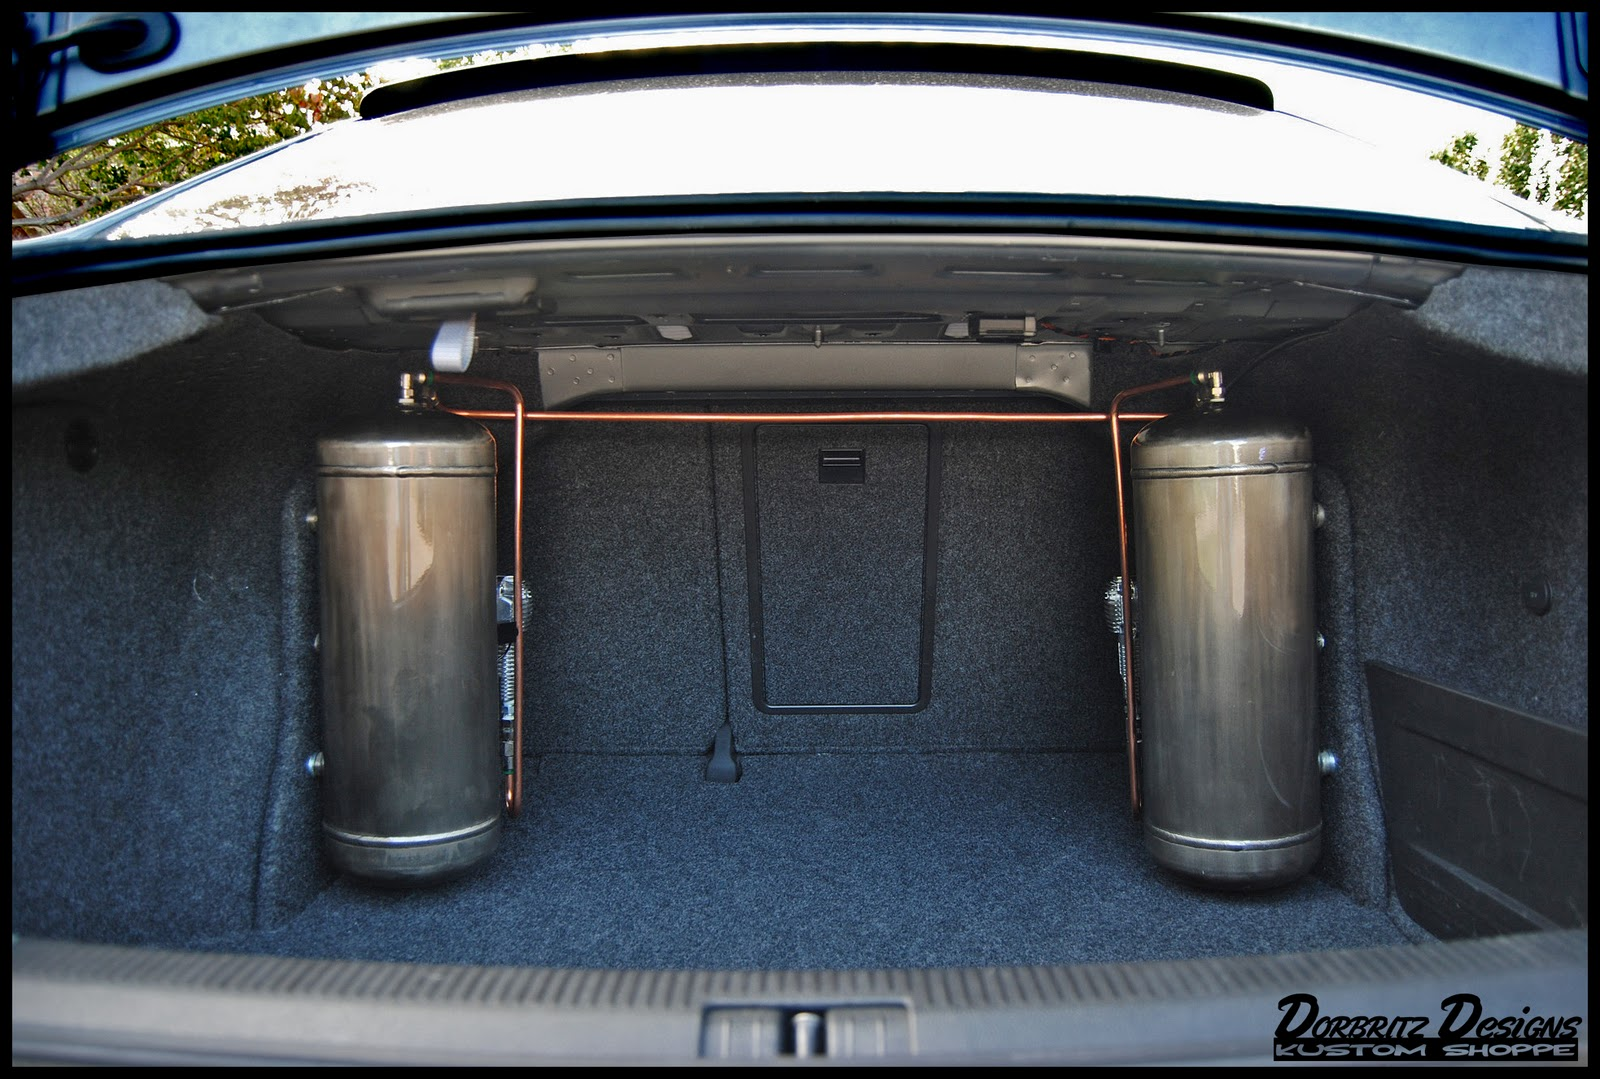 Watch moreover Hood Or Trunk Or Roof Racing Stripes furthermore Gary 34 together with Air Bagging Mk5 Jetta Accuair further 1005 Lrmp Pro Hopper Hydraulics. on custom car trunk designs